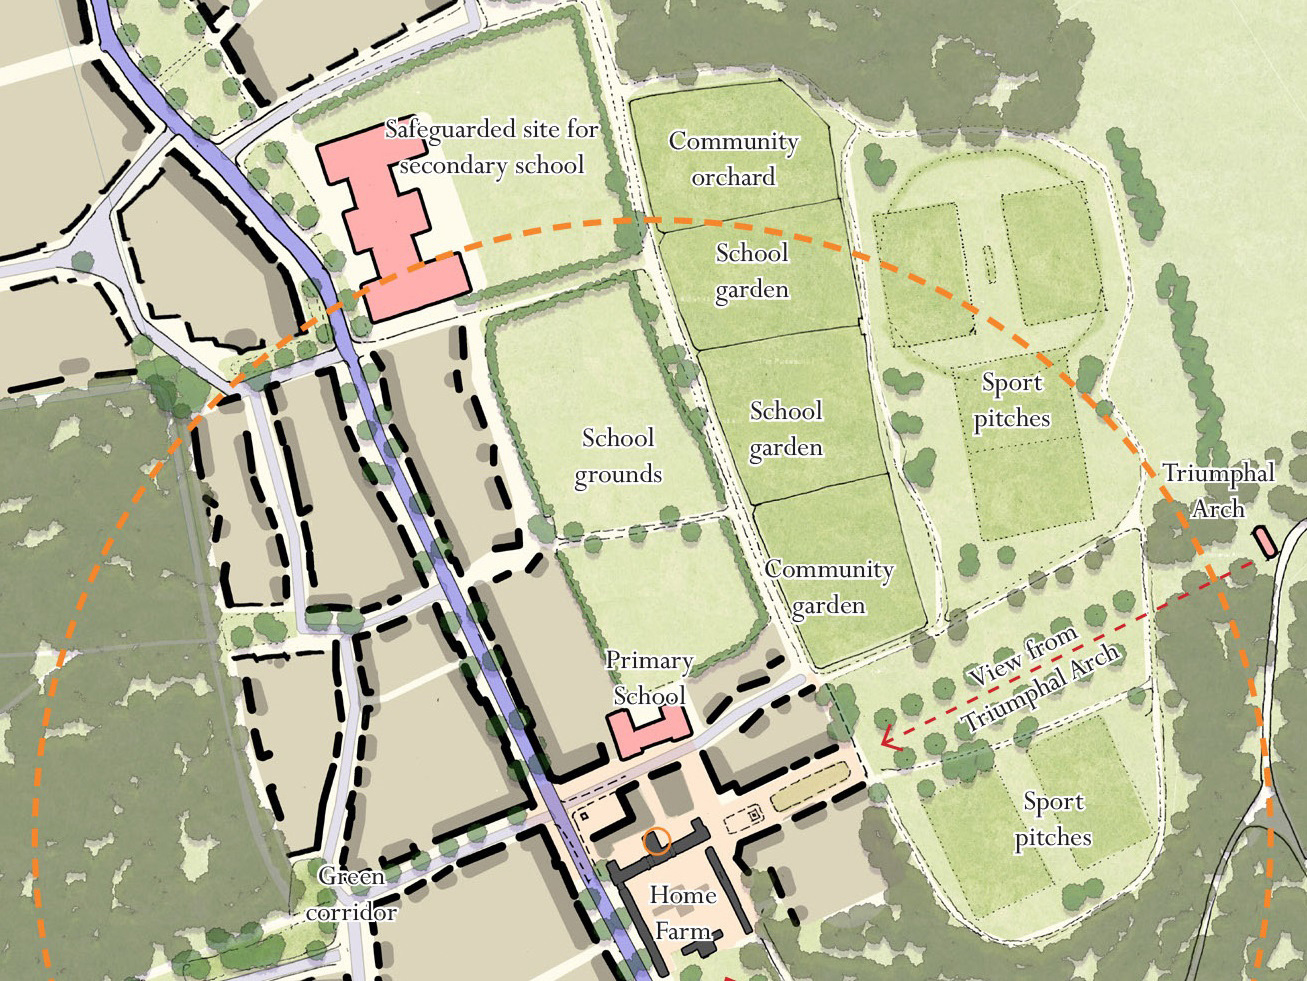 Map of school grounds and school areas within Parlington Village